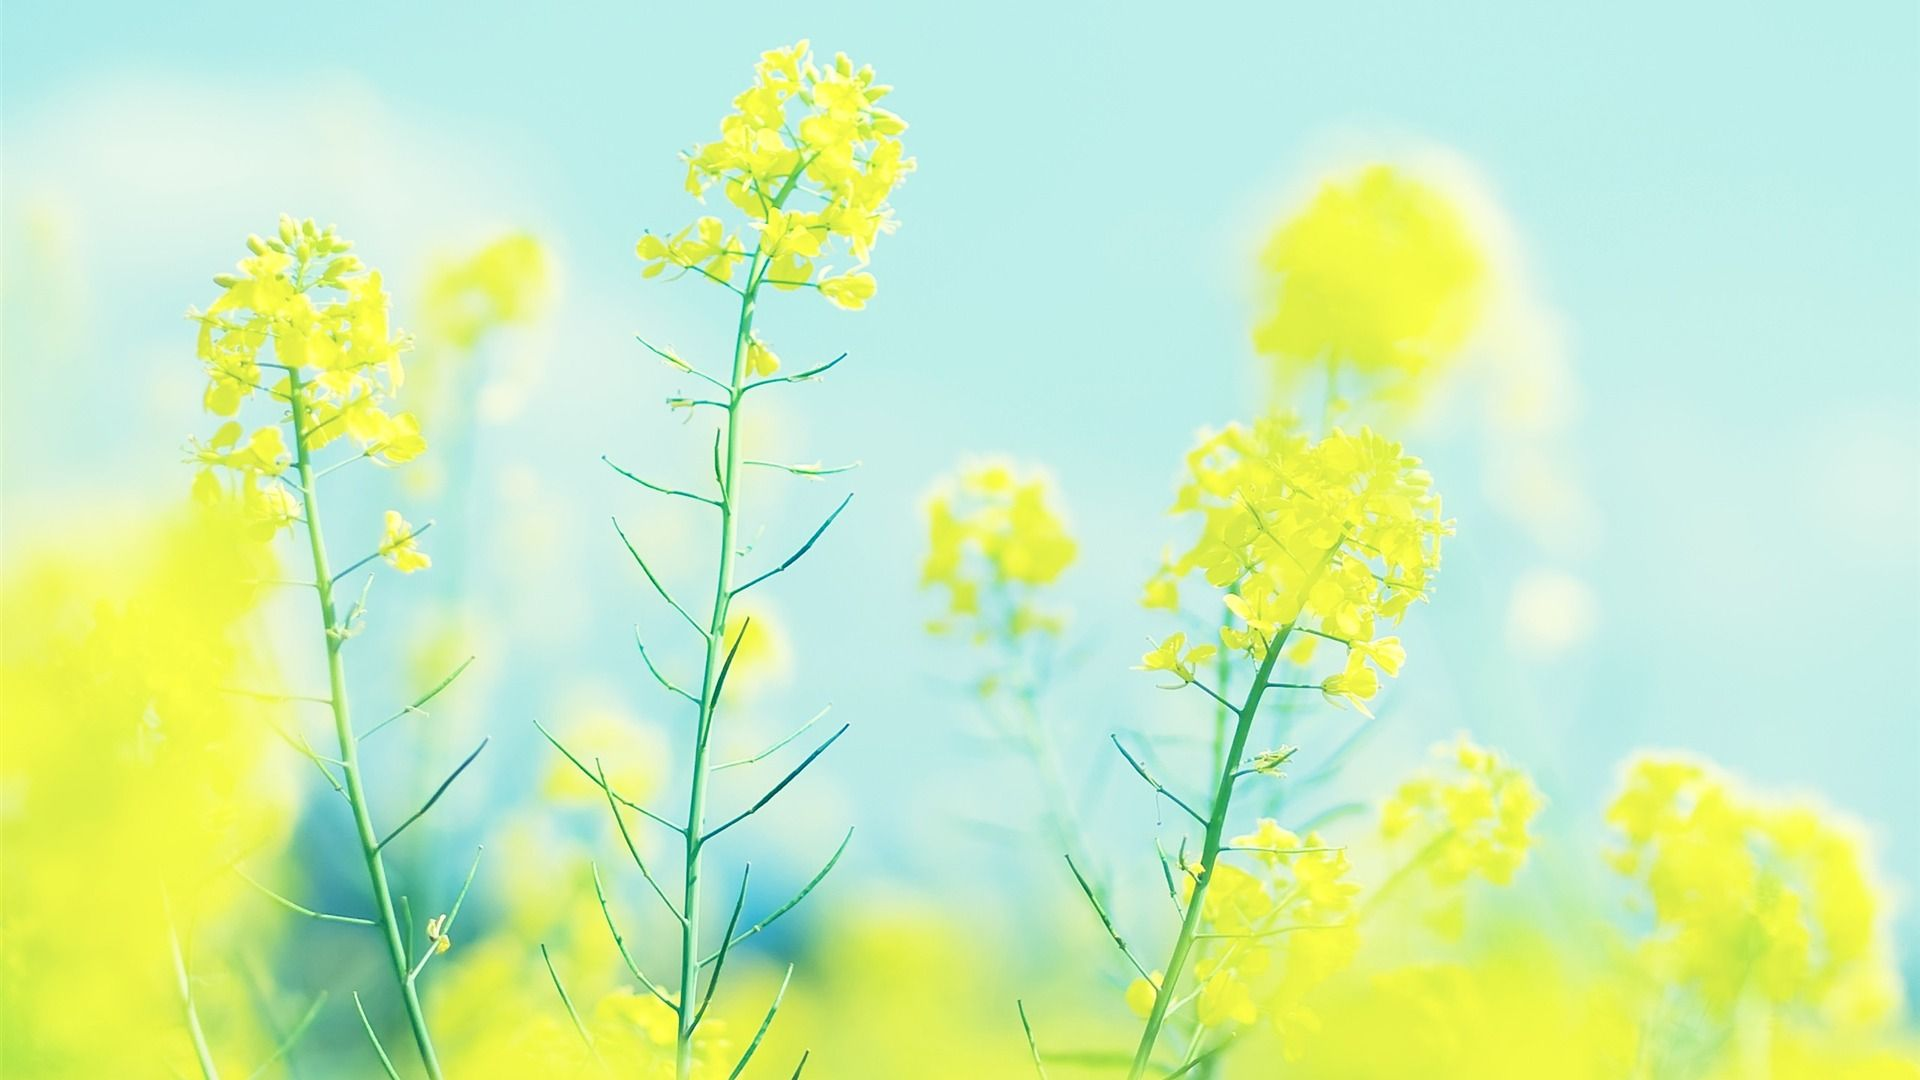 Bright Wallpaper Hd Wallpapers Backgrounds Of Your Choice Bright Wallpaper Yellow Wallpaper Yellow Flowers